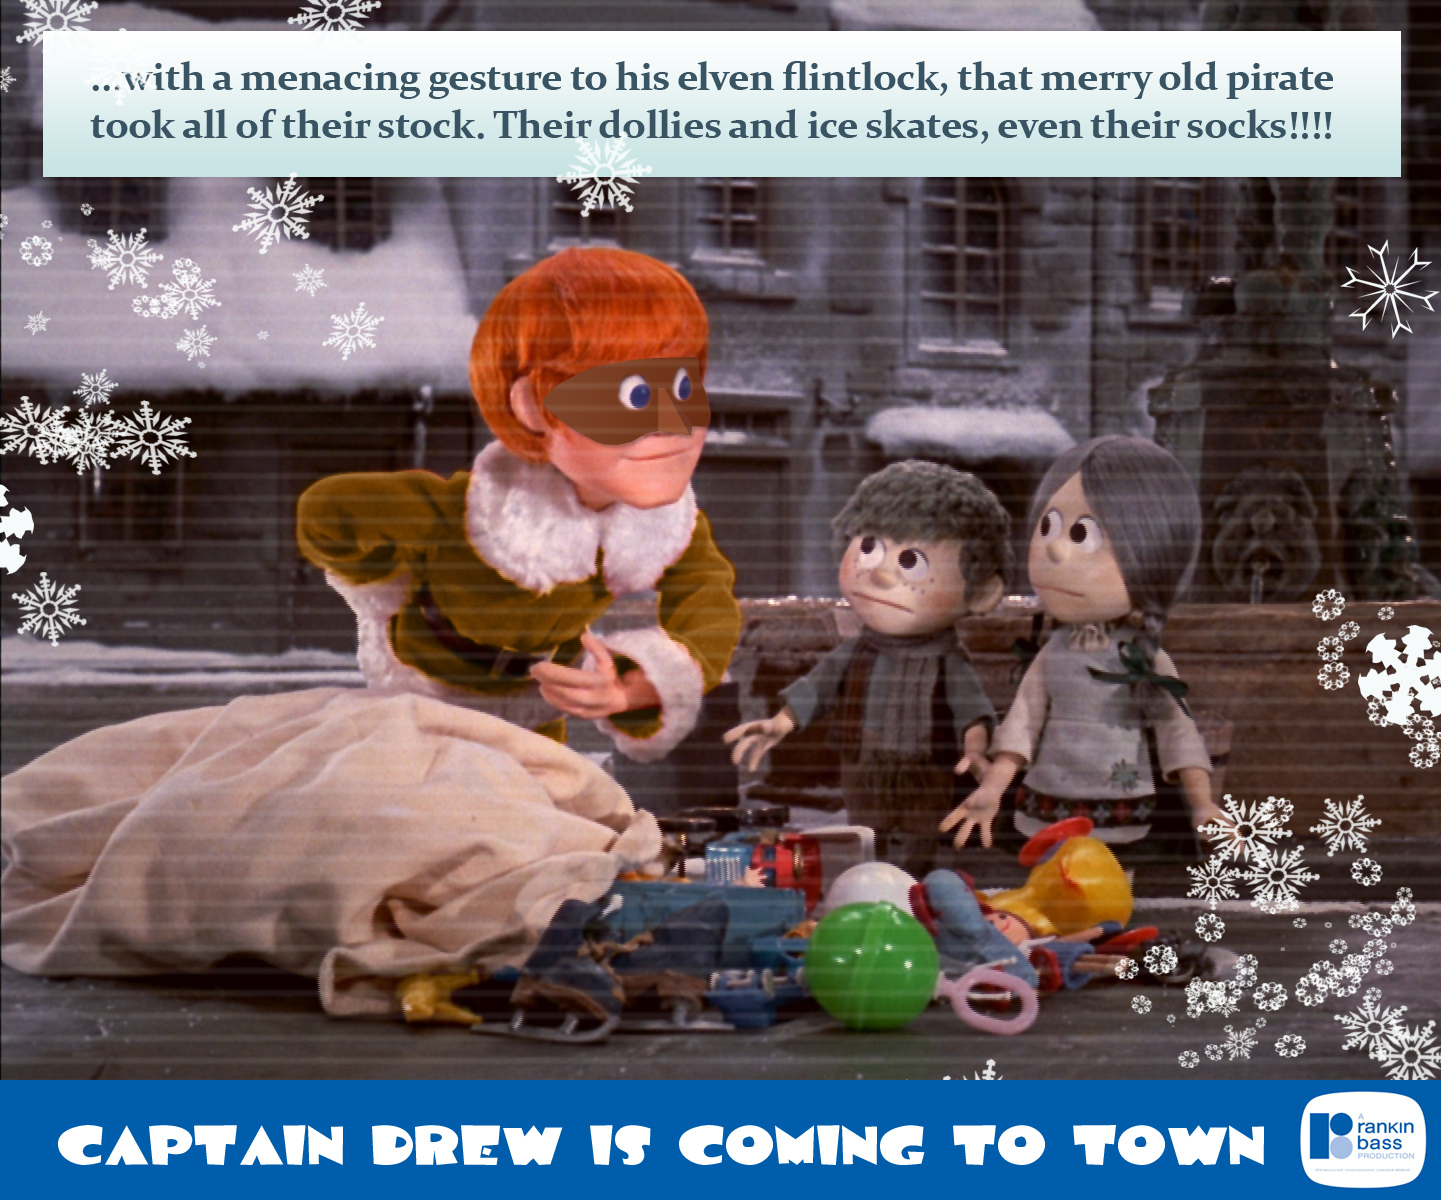 Captain Drew is Coming to Town, released by Rankin Bass in 1975